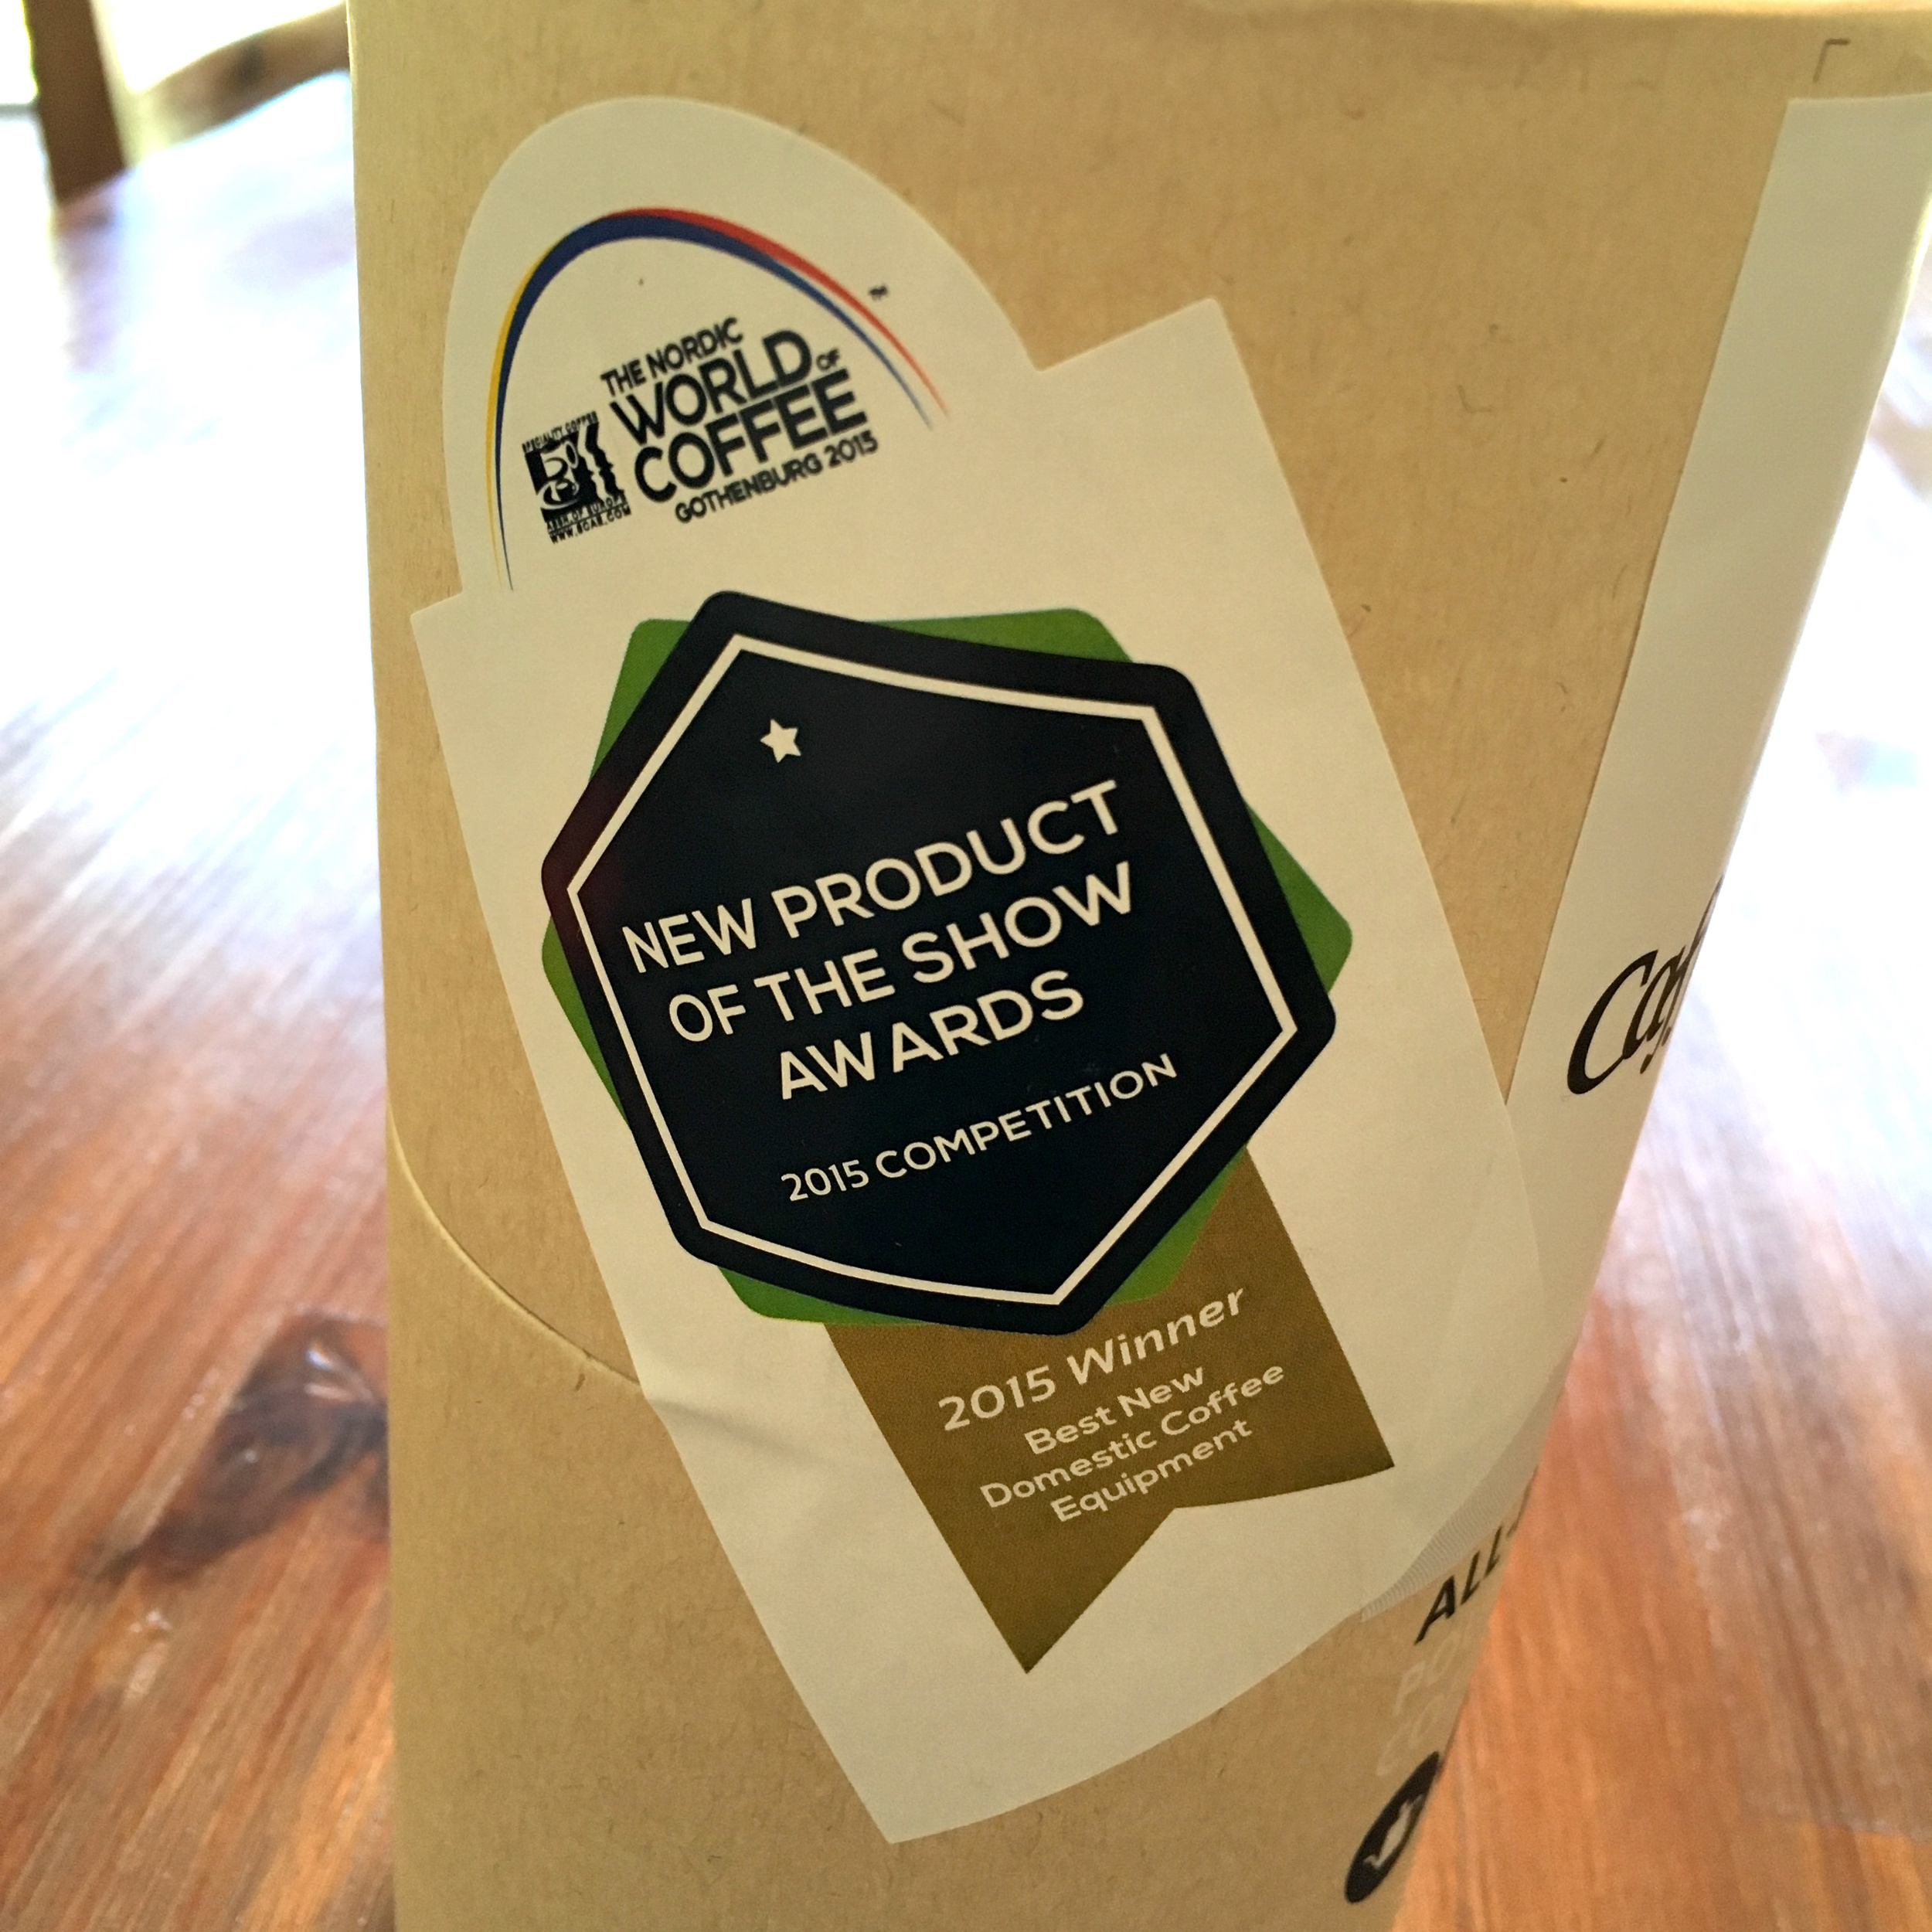 Best New Domestic Coffee Equipment Winner of the 2015 Nordic World of Coffee